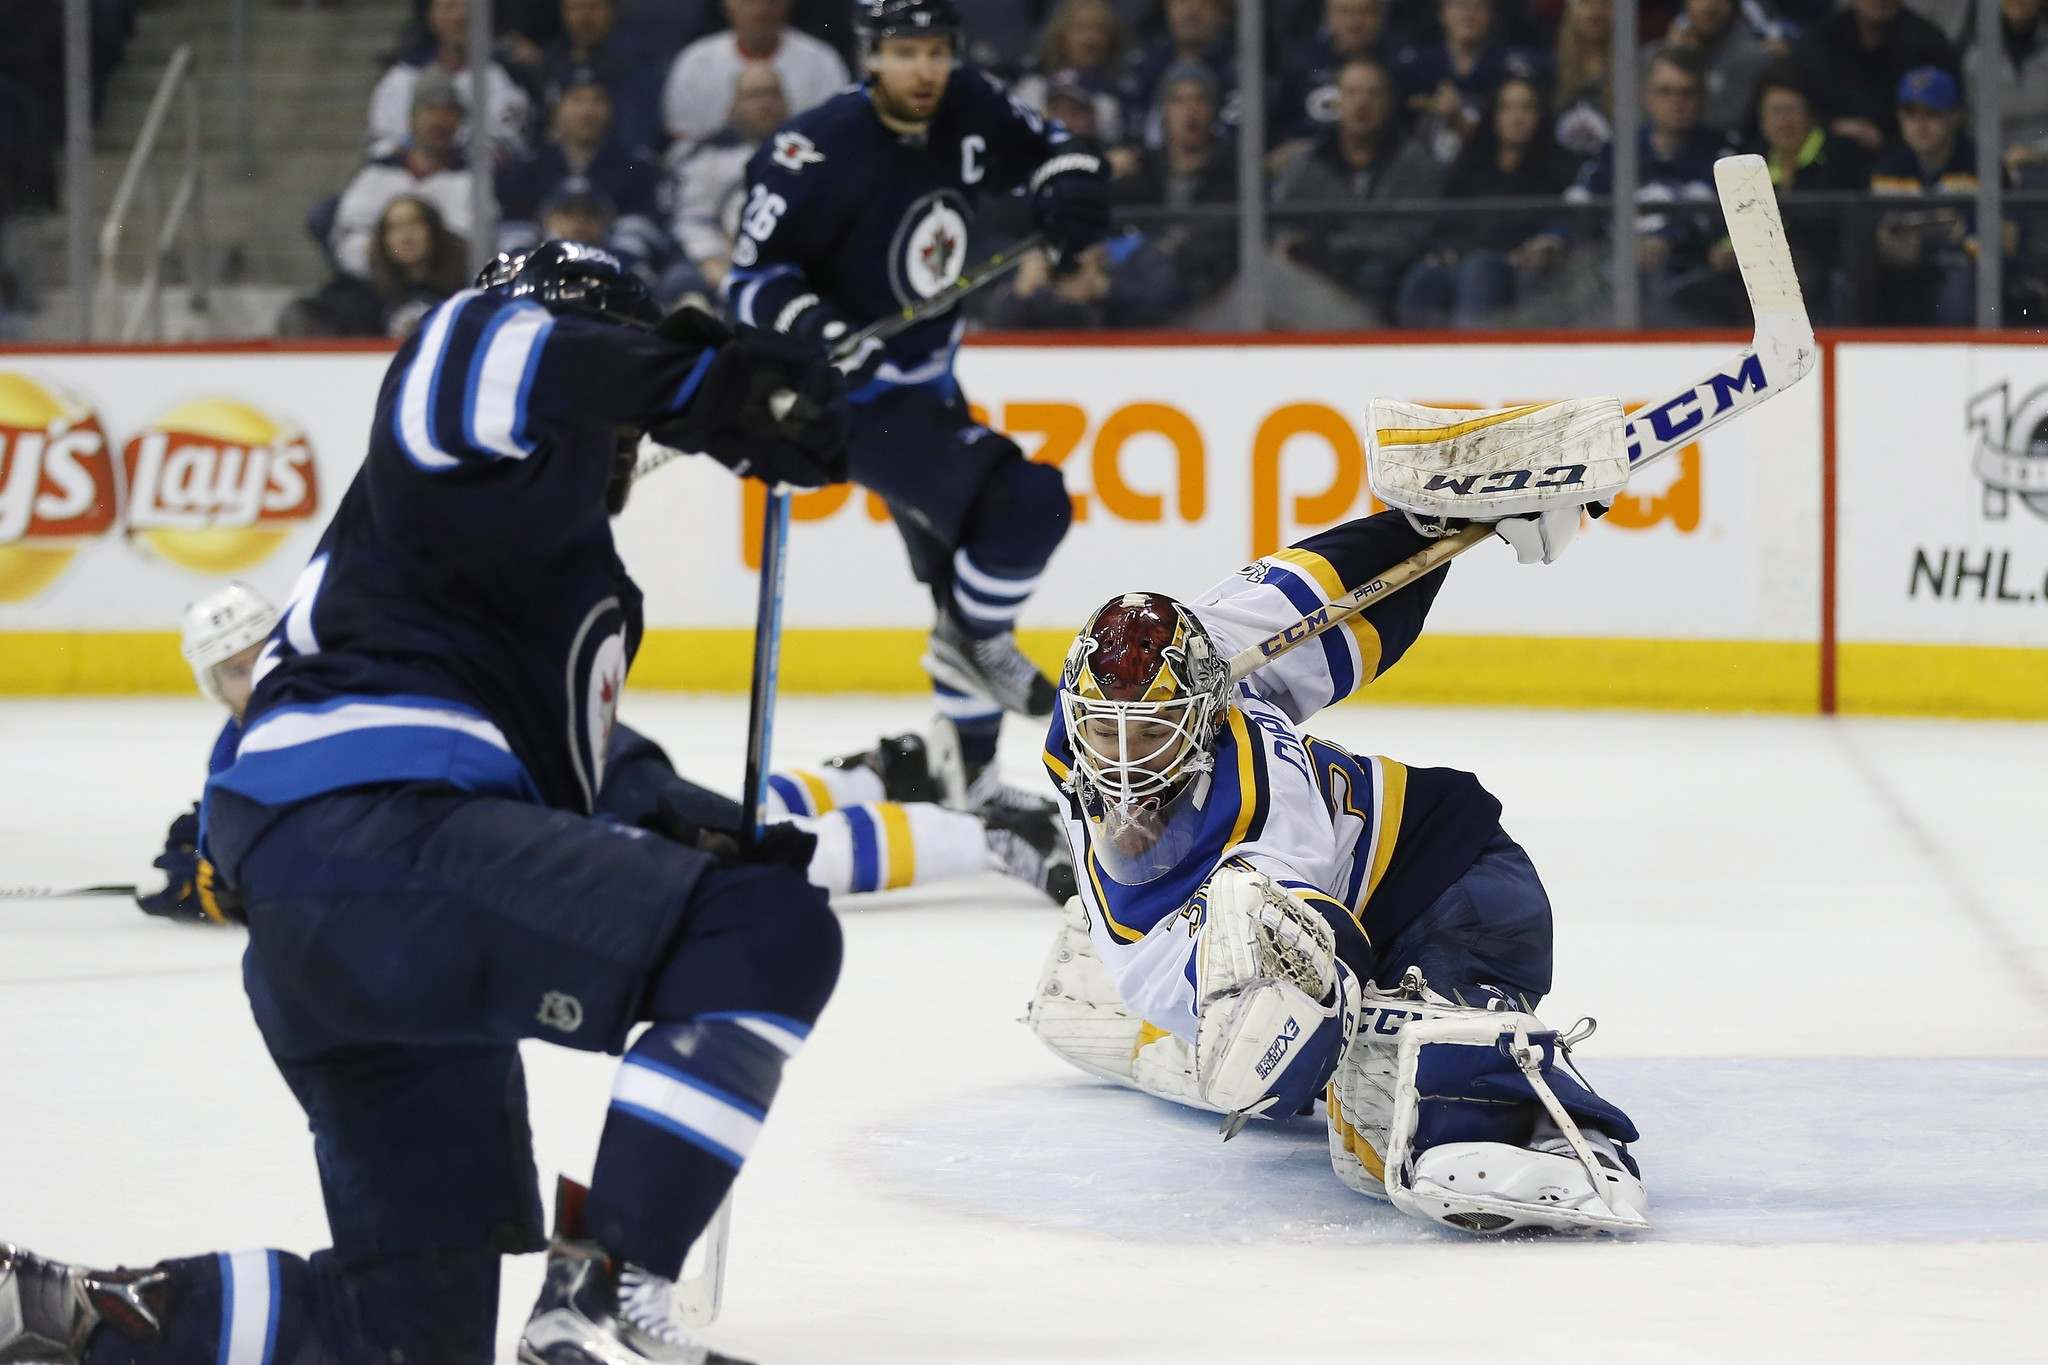 JOHN WOODS / THE CANADIAN PRESS</p><p>St. Louis Blues goaltender Pheonix Copley makes an heroic save on Winnipeg Jets' Mathieu Perreault during the second period, Saturday. </p>